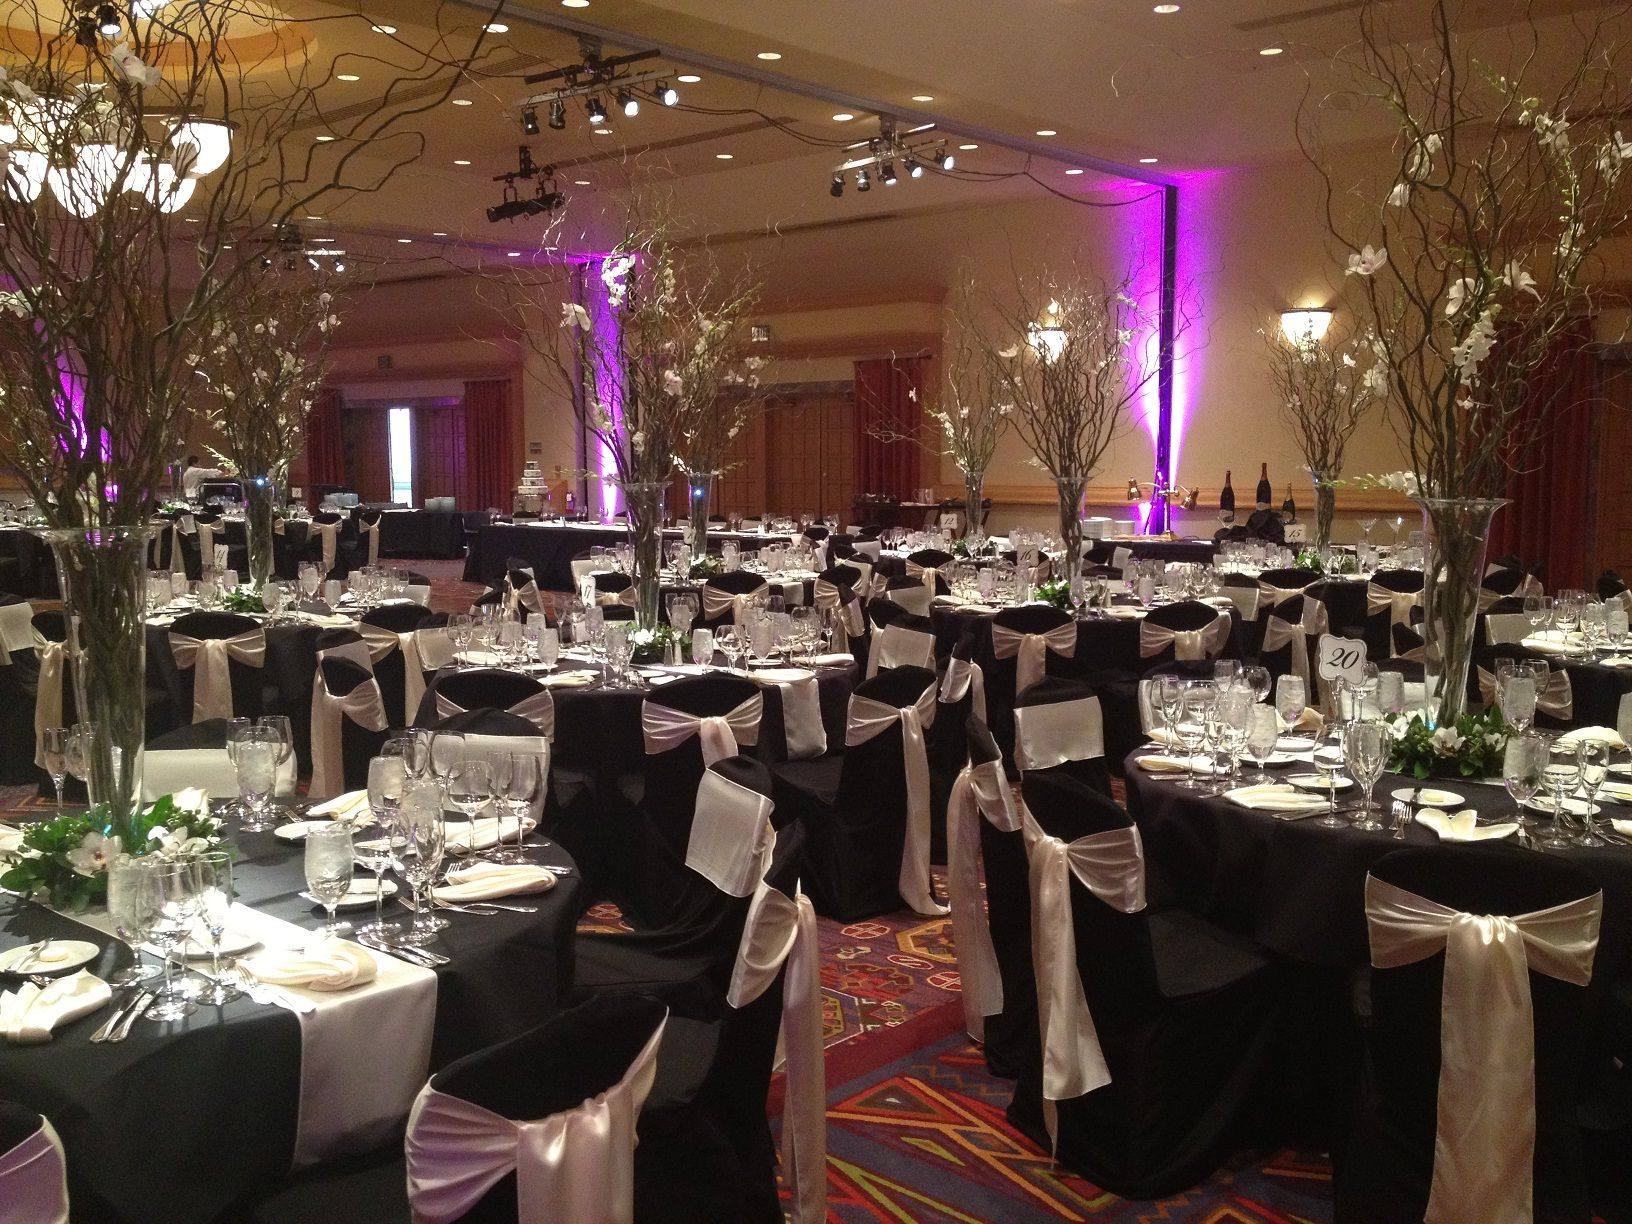 Black Chair Covers Ivory Satin Sashes At The Arizona Grand Black Chair Covers Wedding Linens White Decor